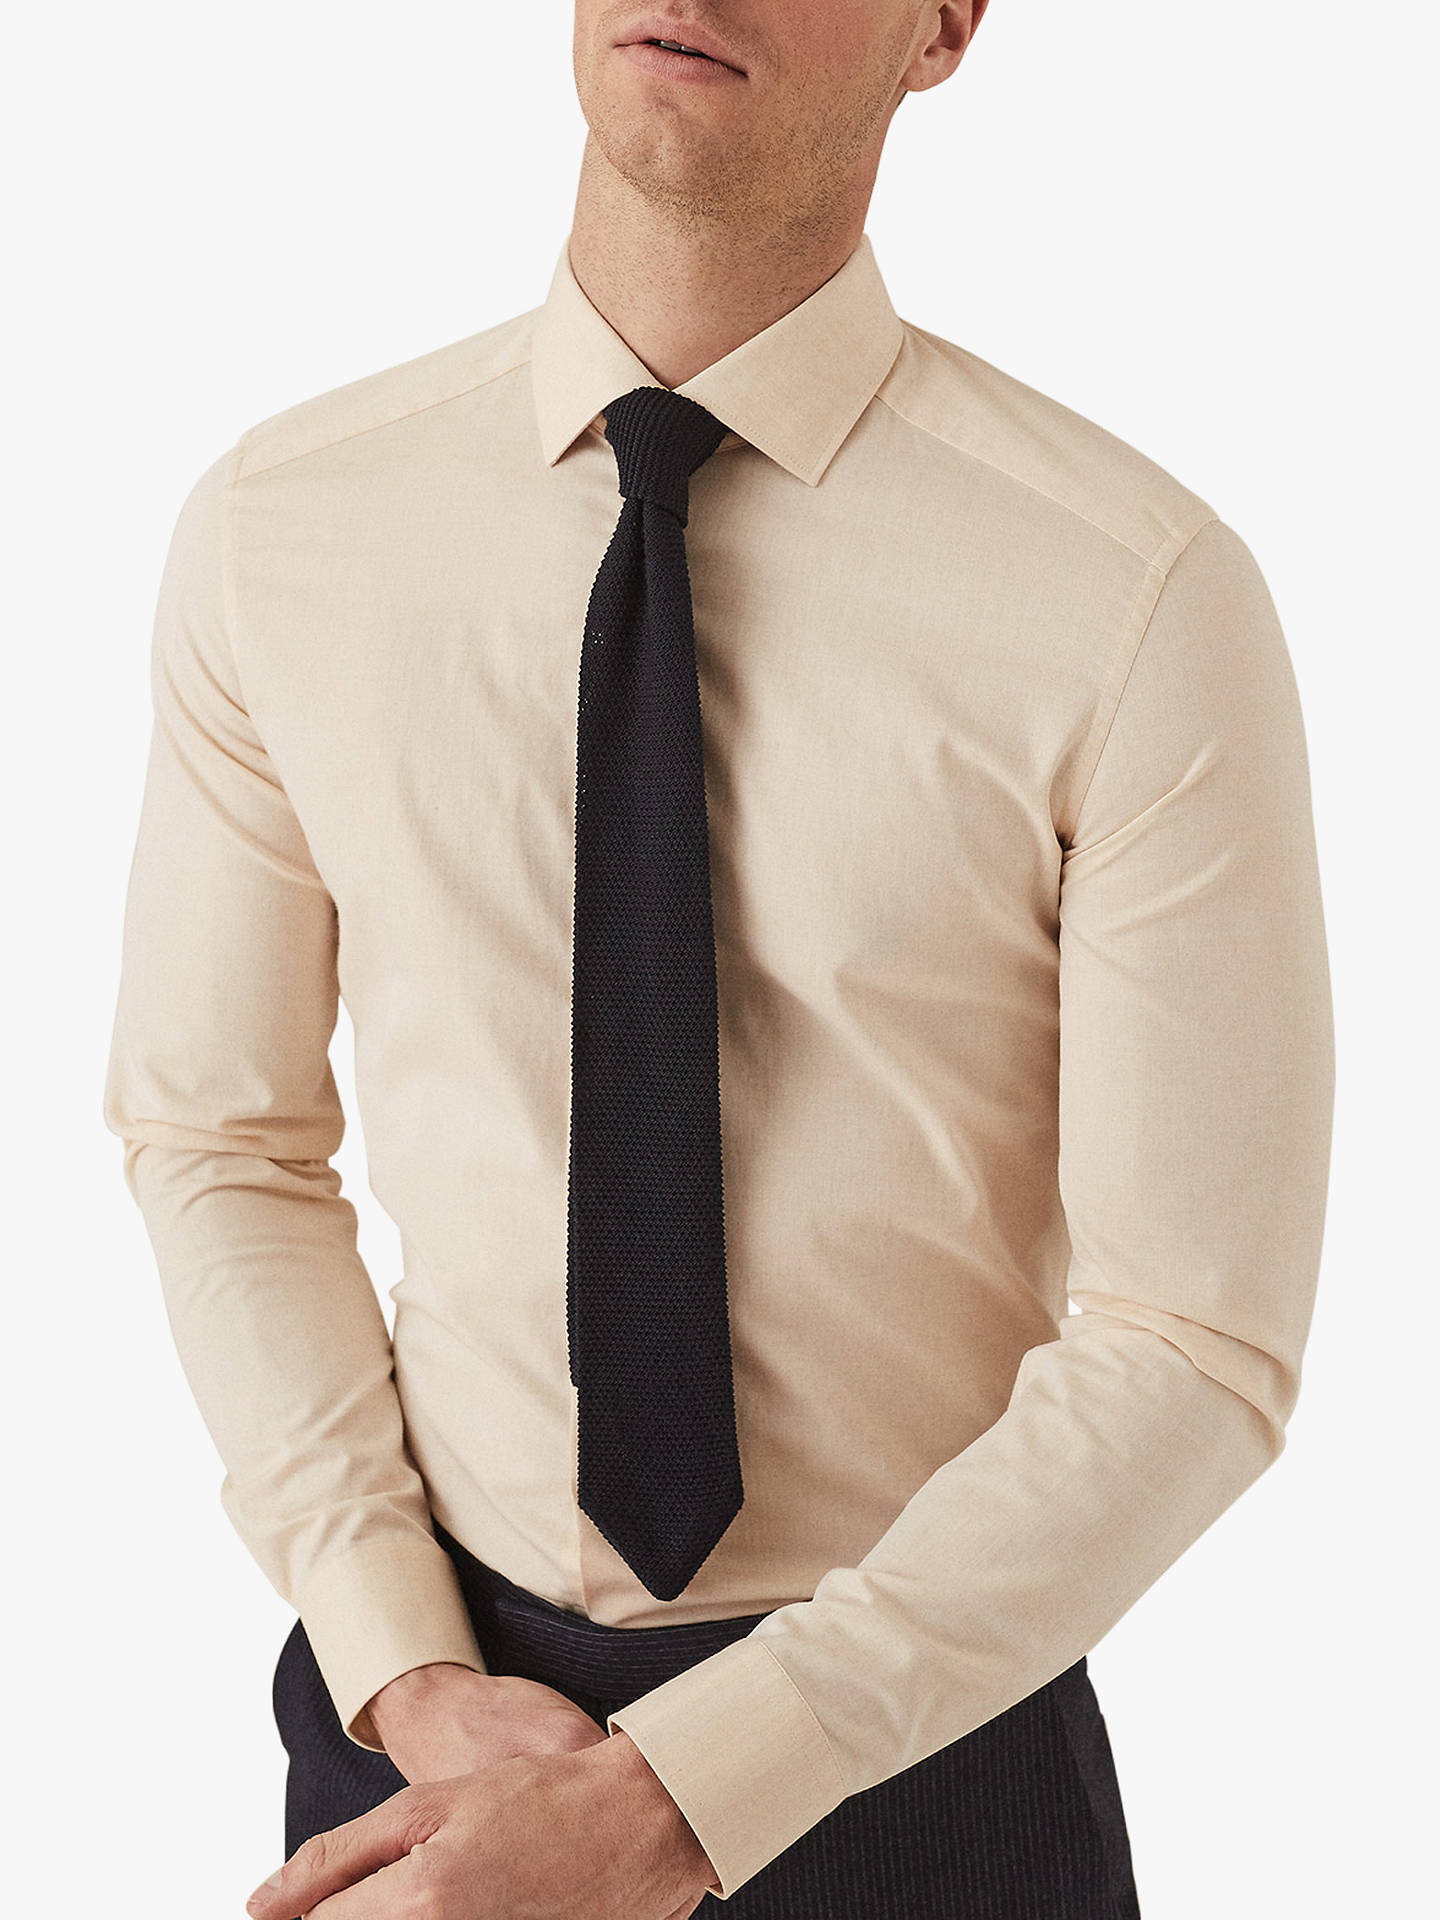 916f8f902 Buy Reiss Irving Cotton Slim Fit Shirt, Yellow, XS Online at johnlewis.com  ...